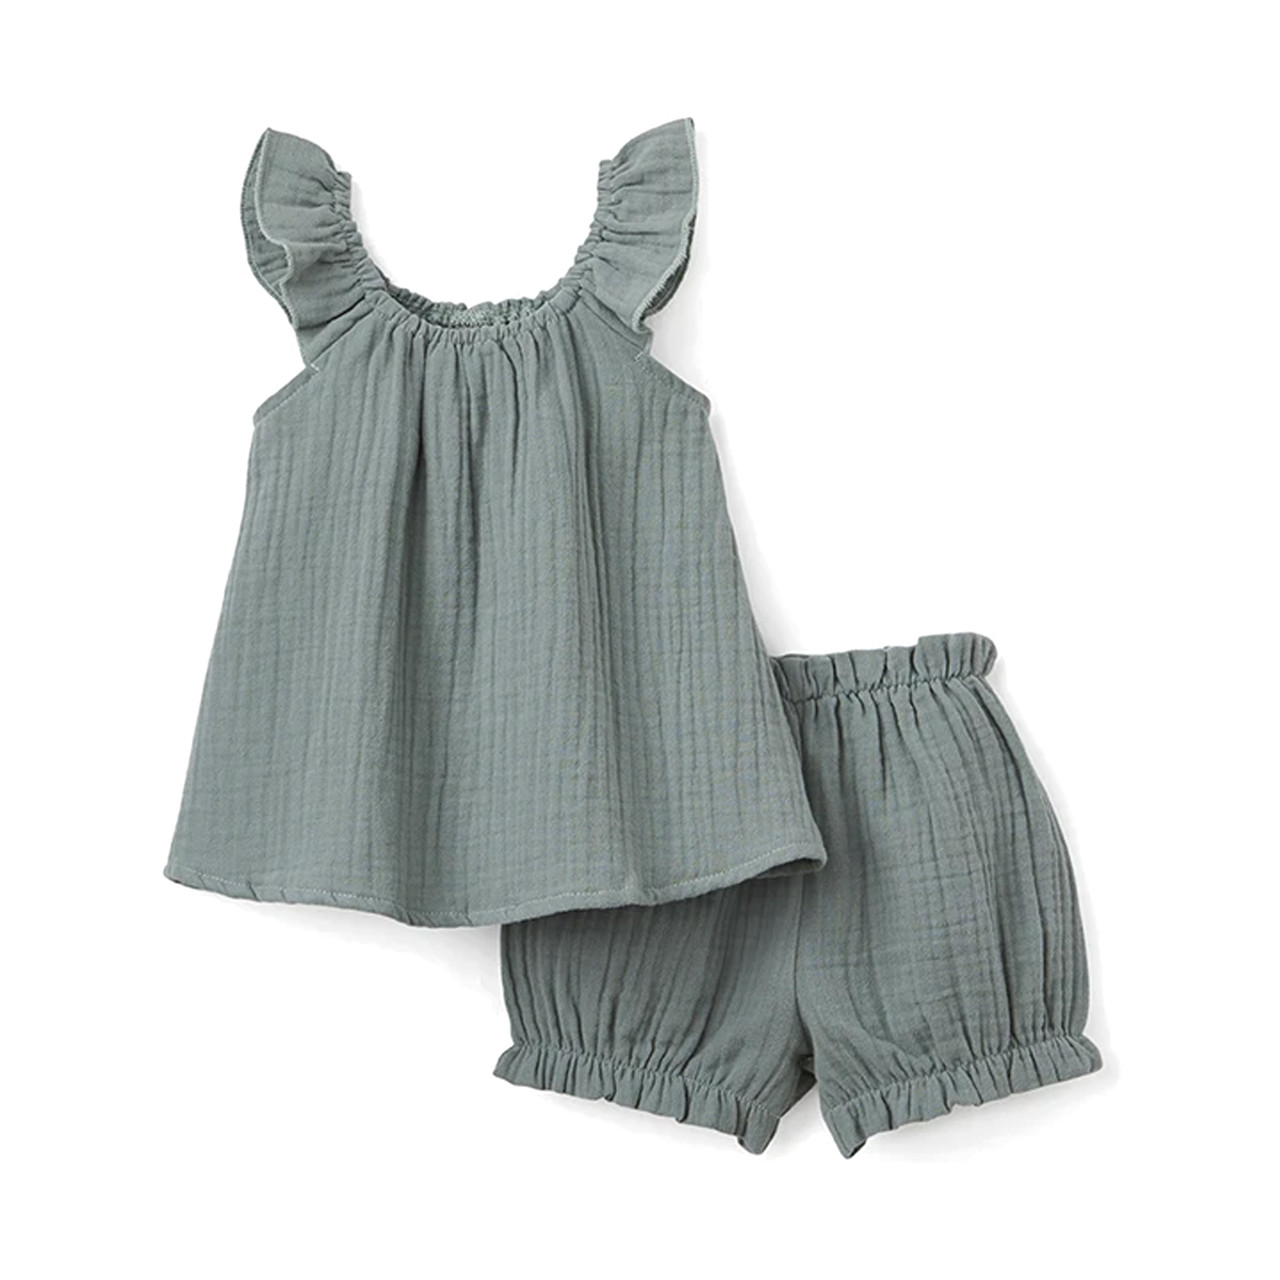 Little Adventures Bloomers for Girls Small 1-3 Yrs